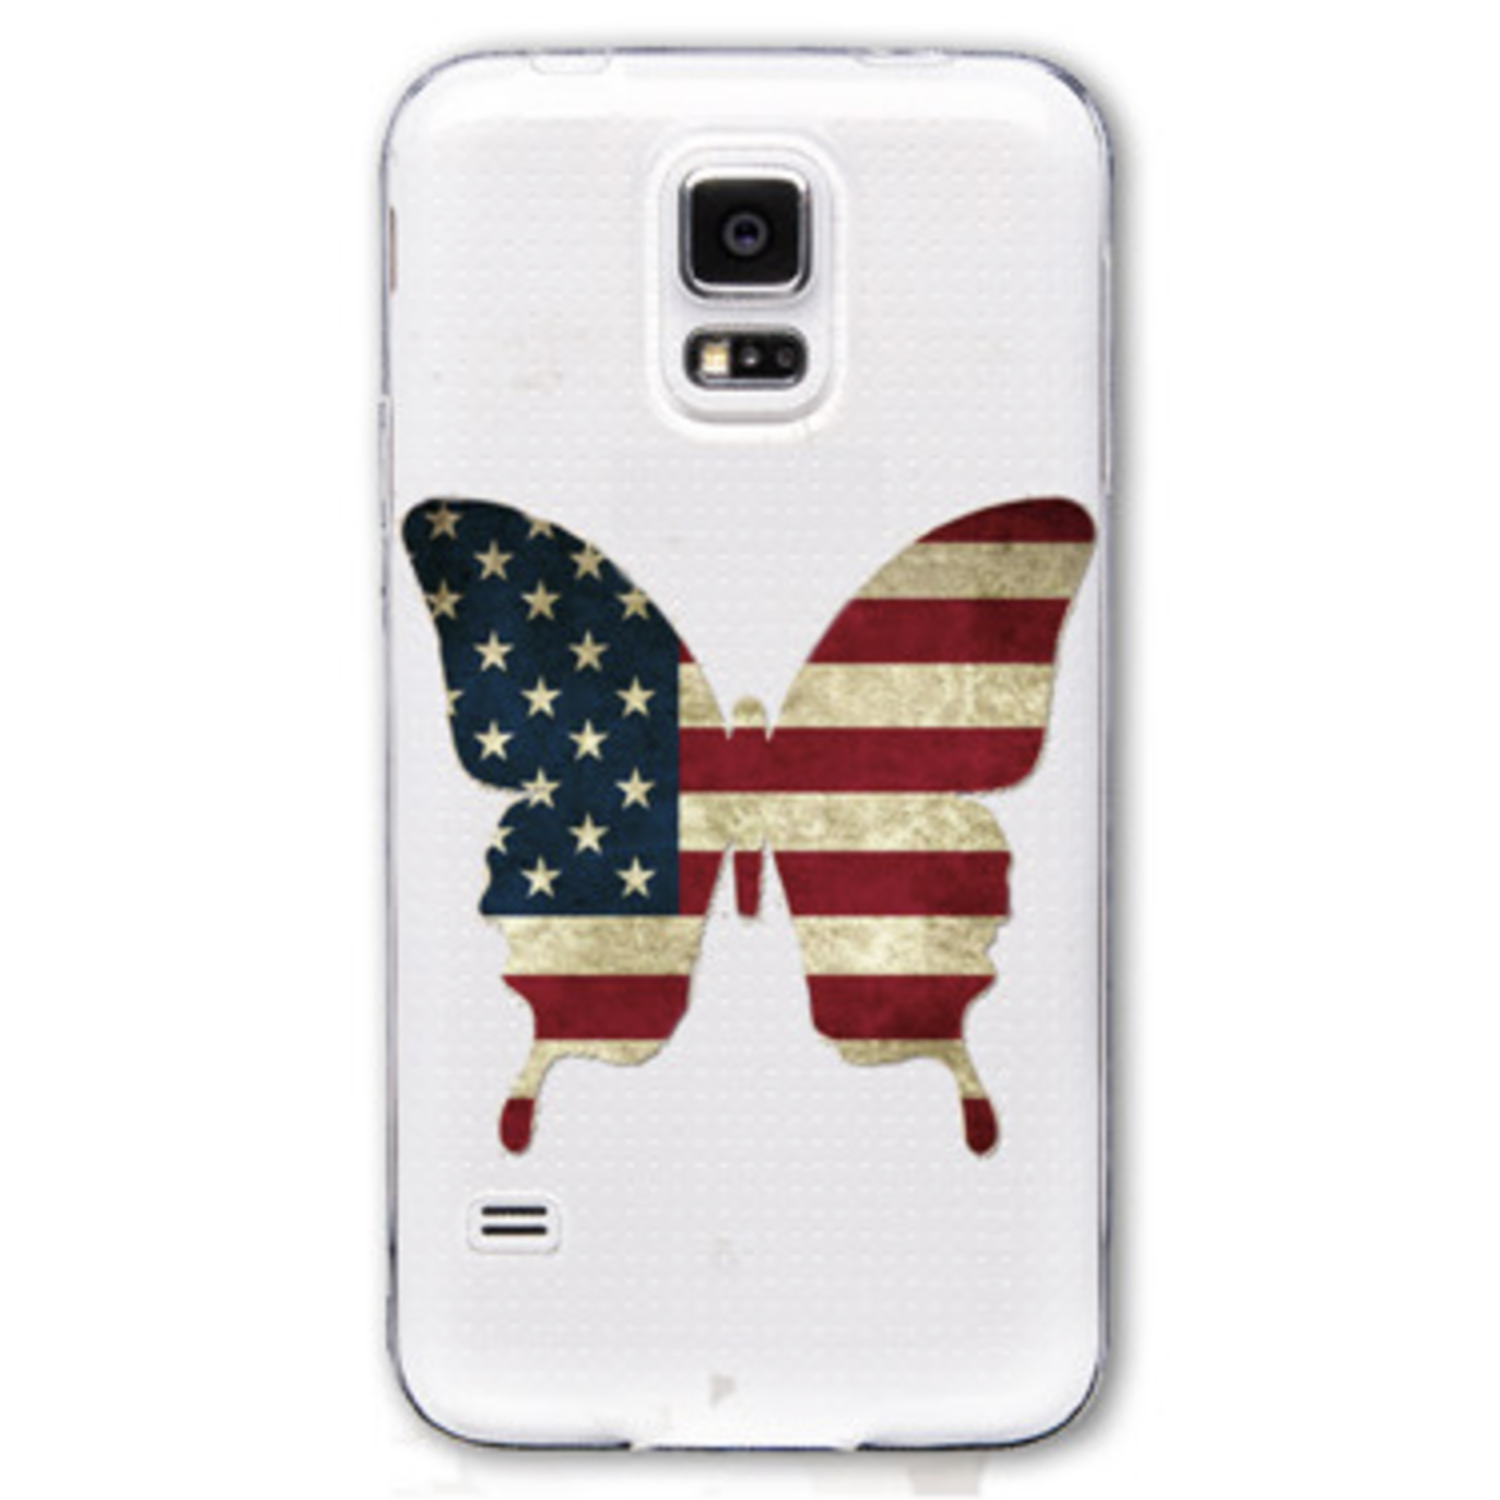 Kritzel Case Collection Galaxy S5 - Mod. #488